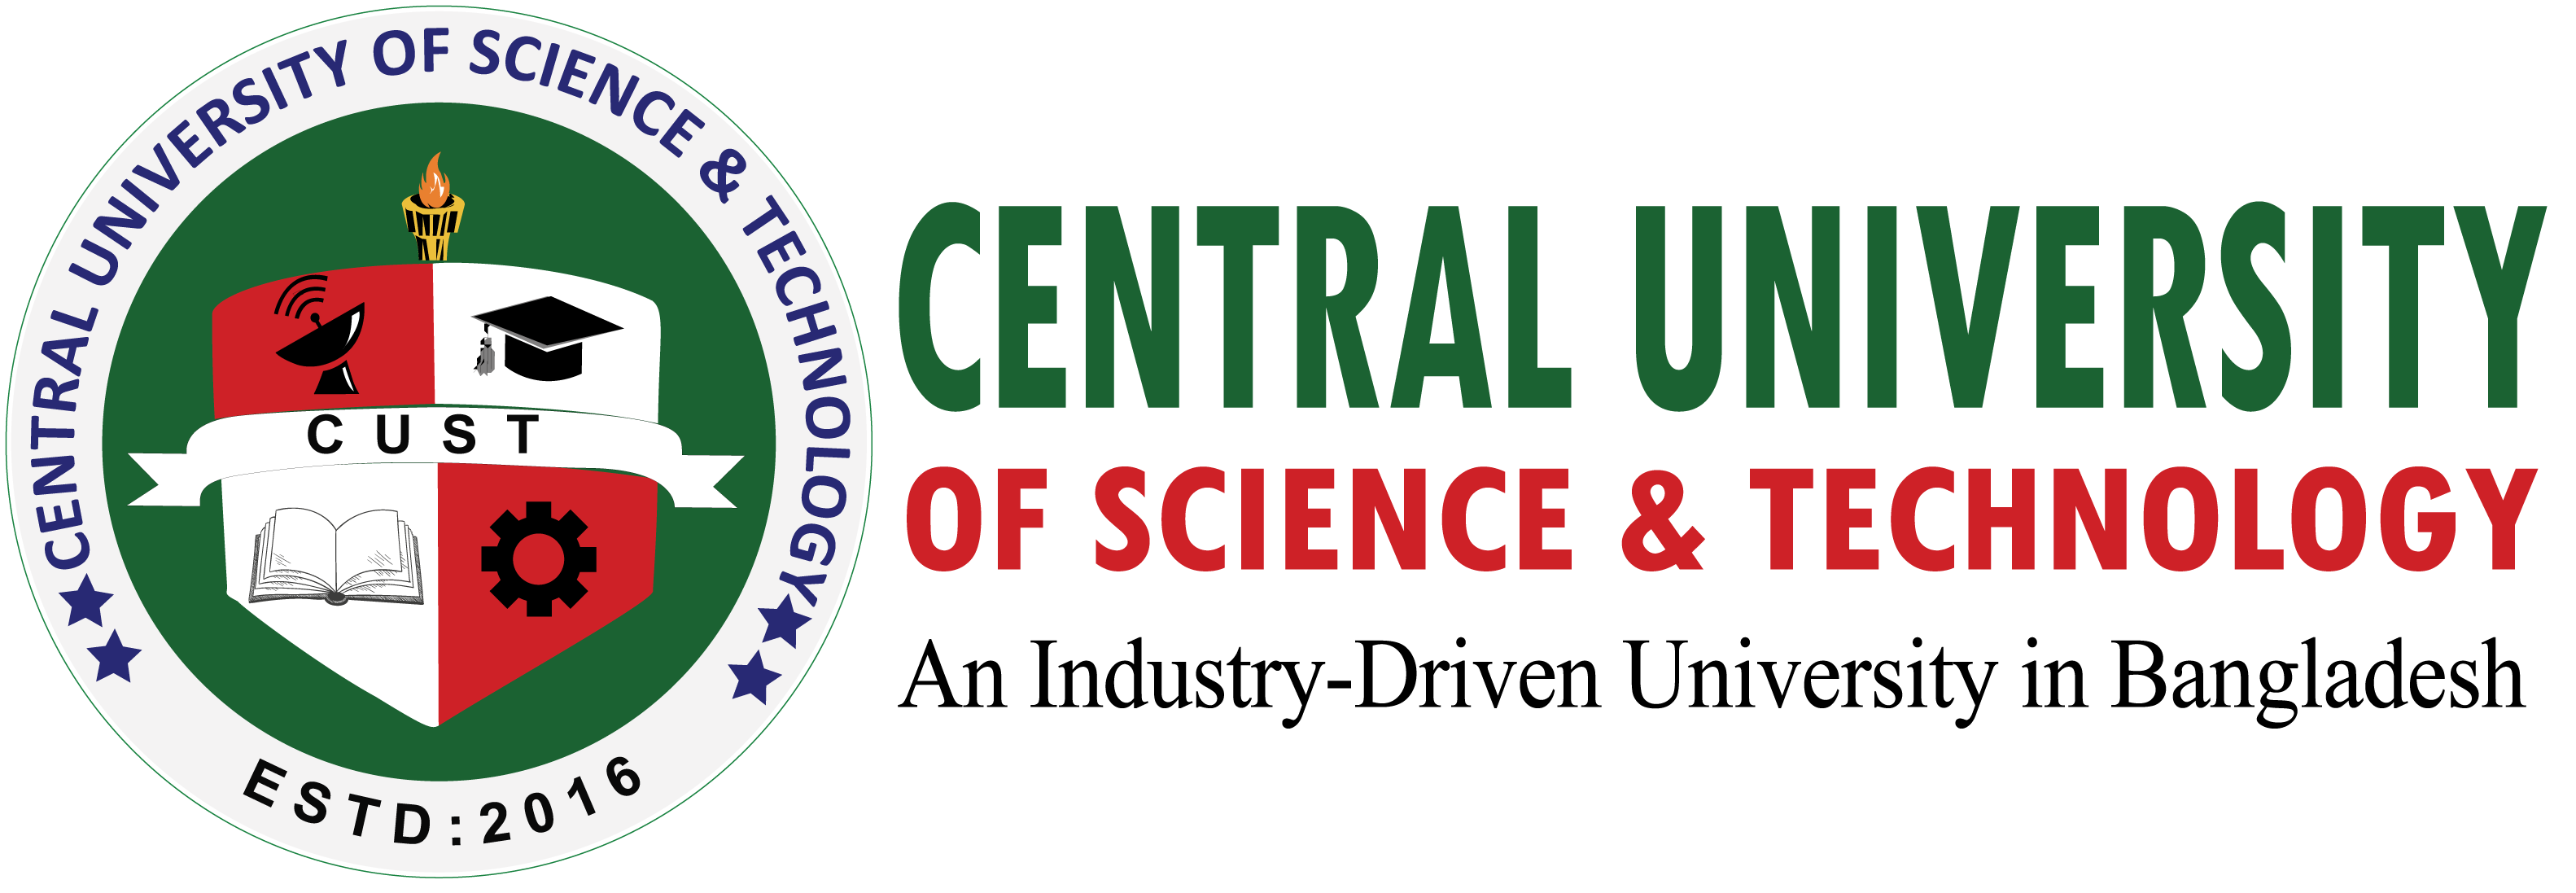 Notice - Central University of Science & Technology